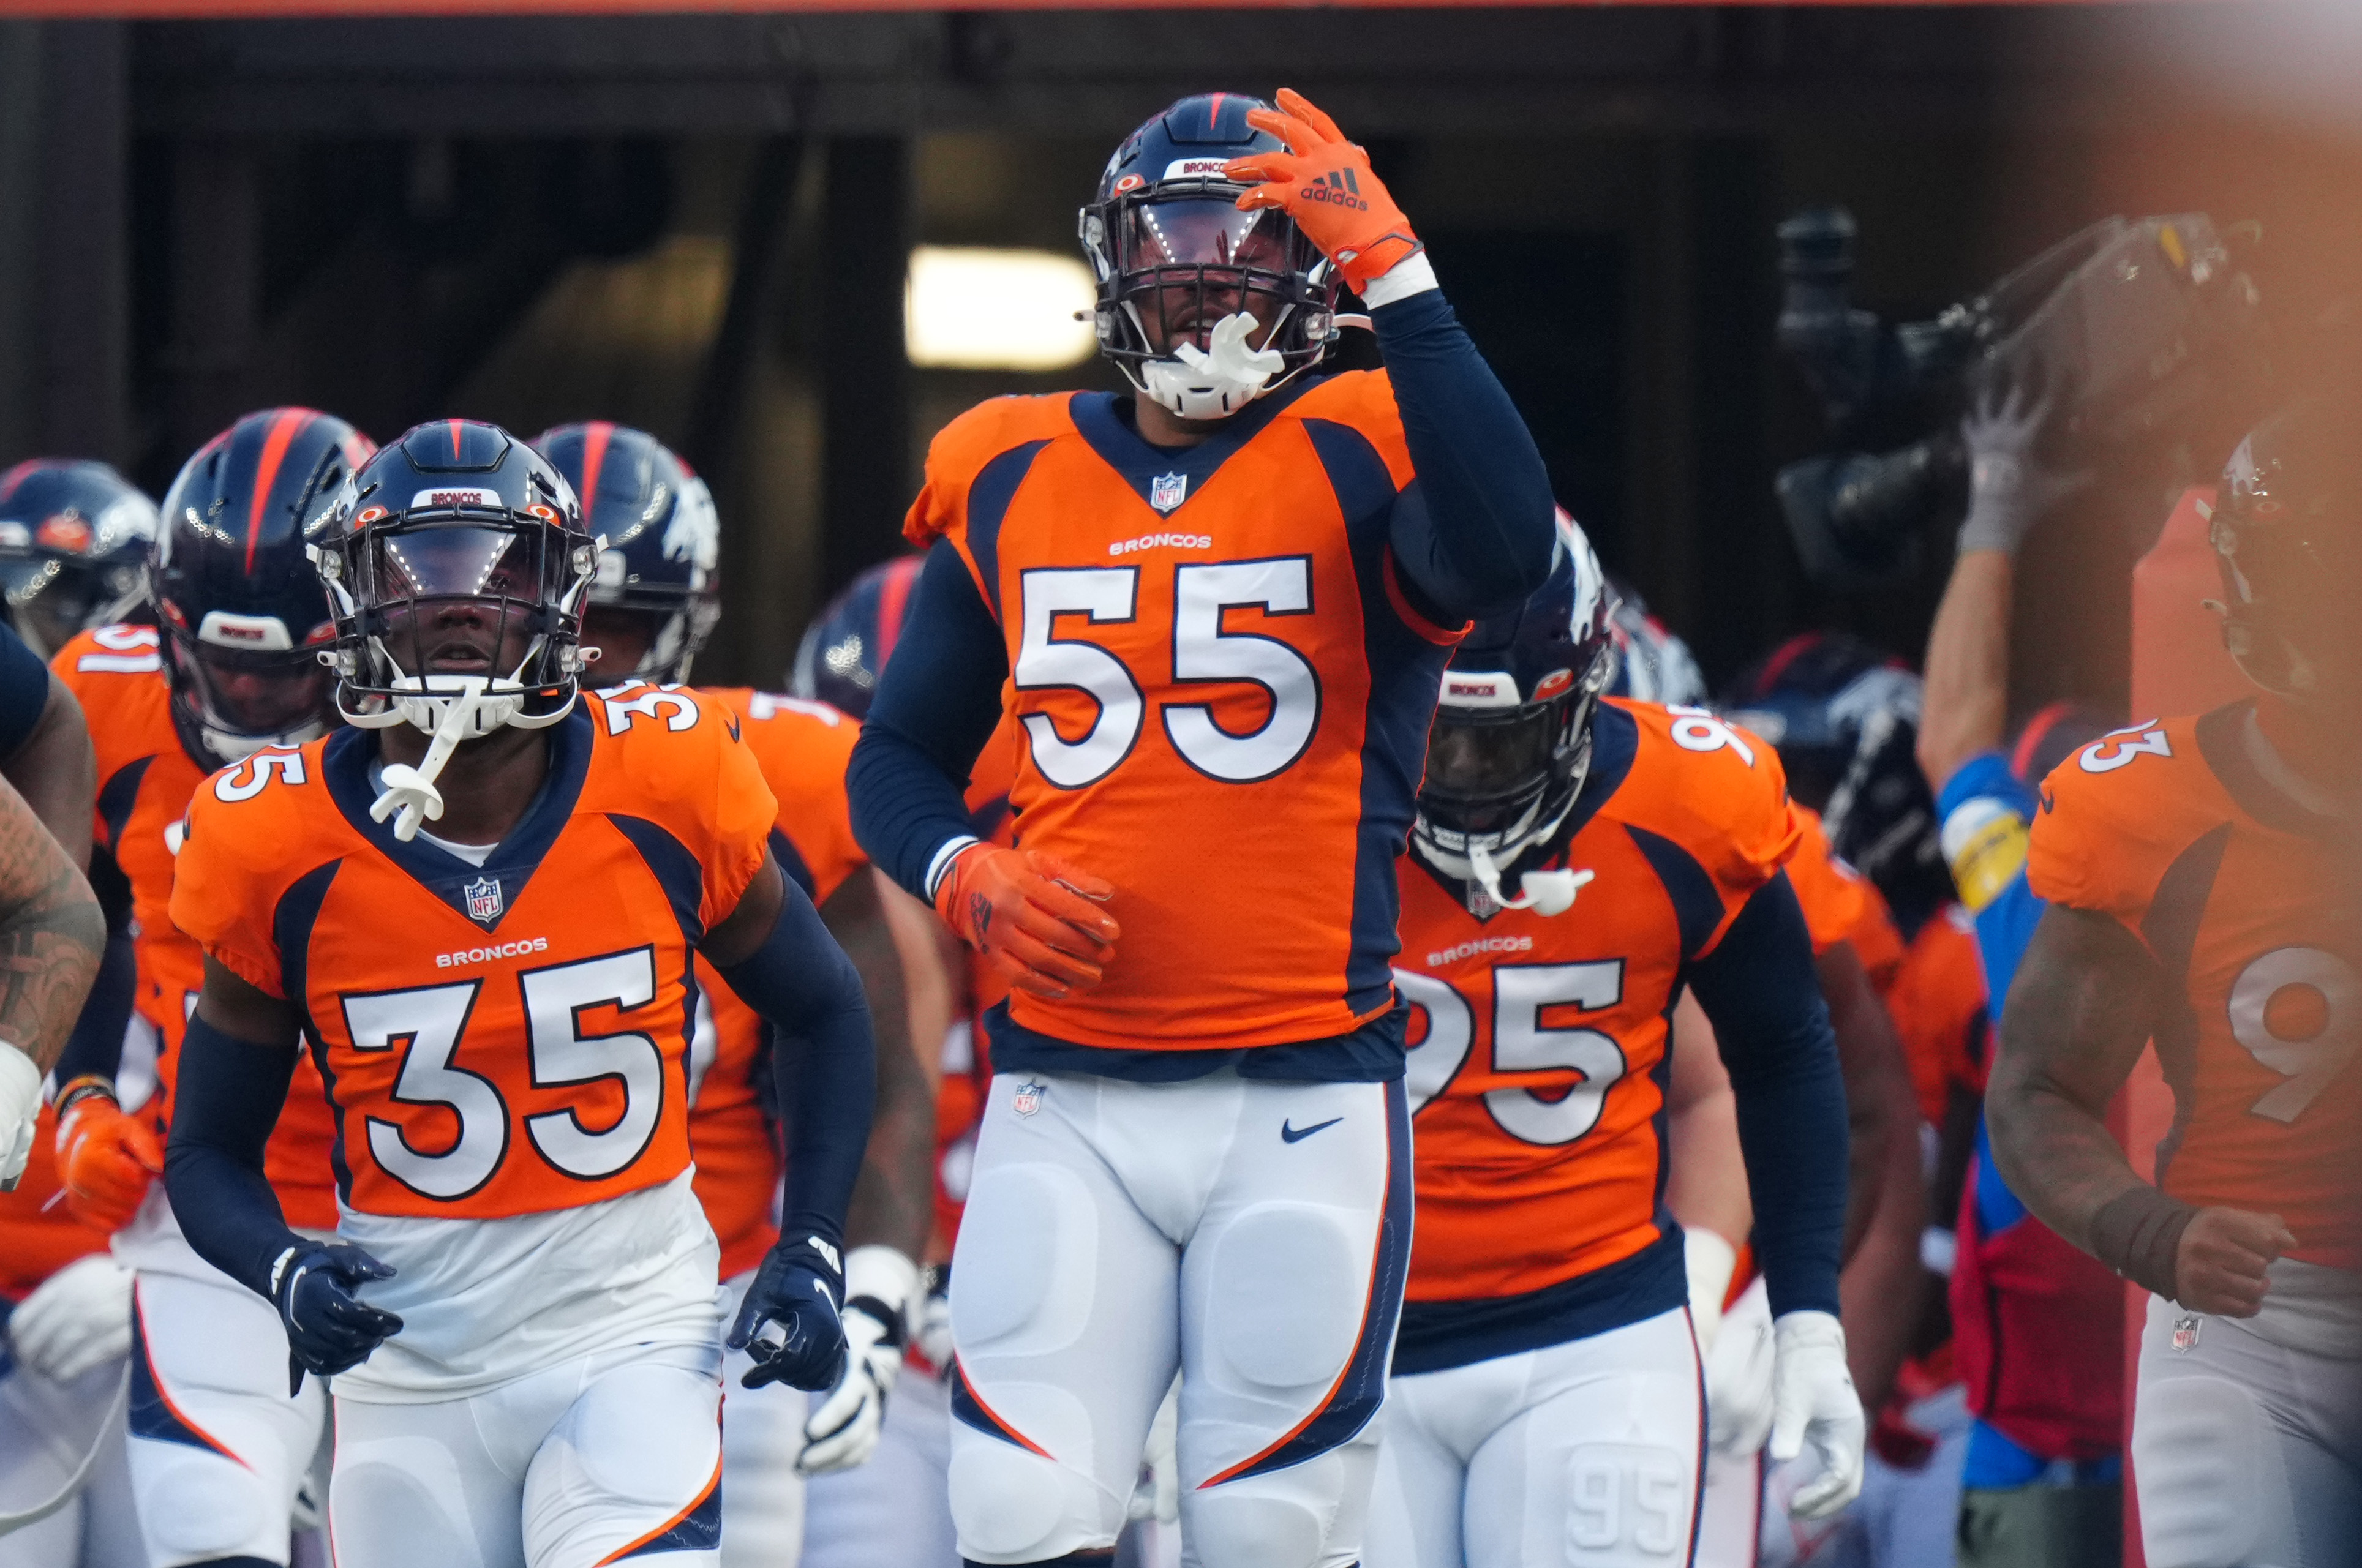 Aug 28, 2021; Denver, Colorado, USA; Denver Broncos outside linebacker Bradley Chubb (55) before the preseason game against the Los Angeles Rams at Empower Field at Mile High. Mandatory Credit: Ron Chenoy-USA TODAY Sports/File Photo